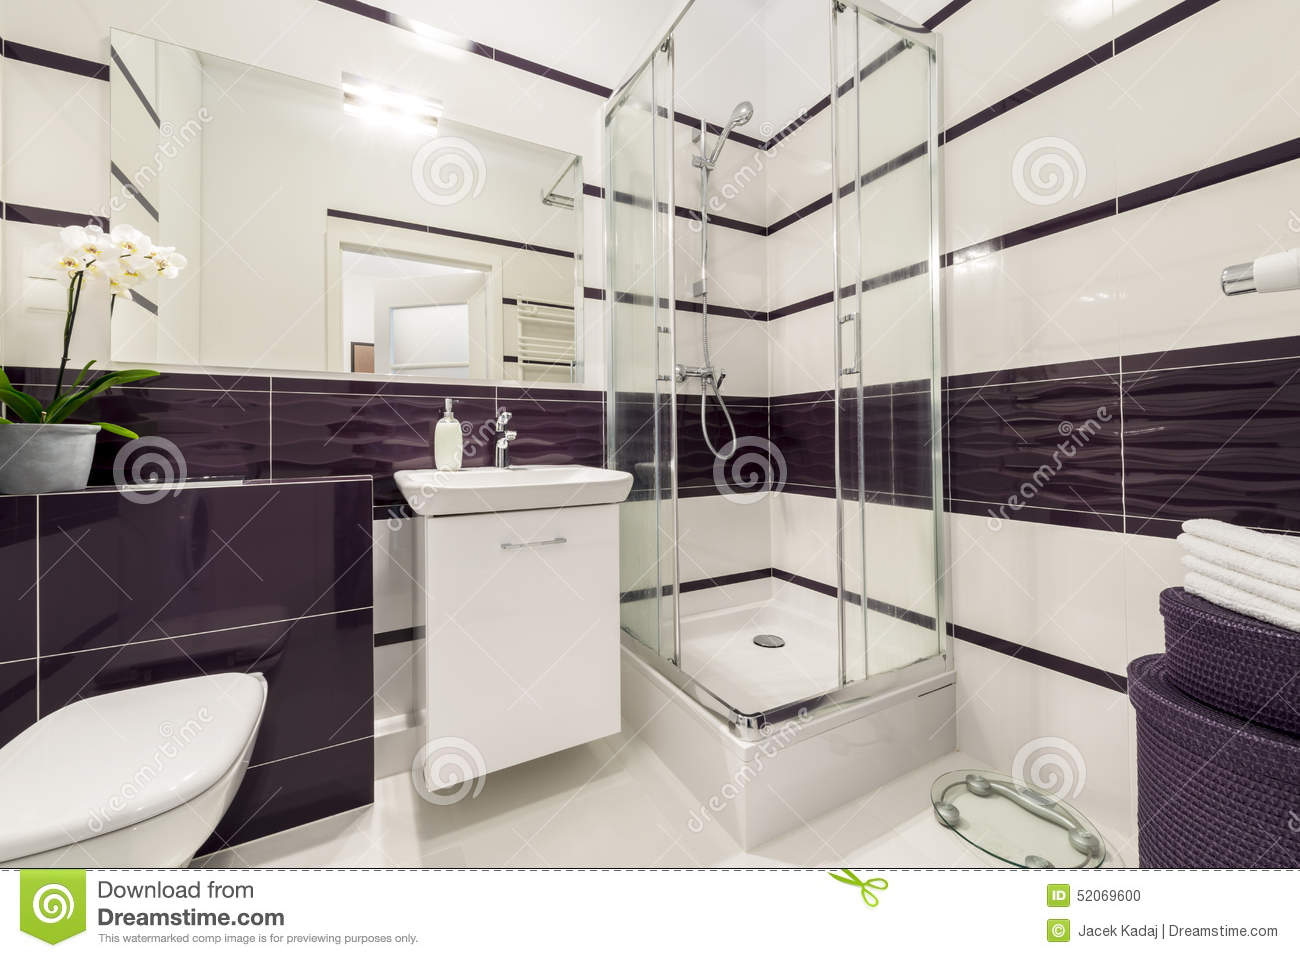 salle de bains moderne avec le compartiment de douche. Black Bedroom Furniture Sets. Home Design Ideas